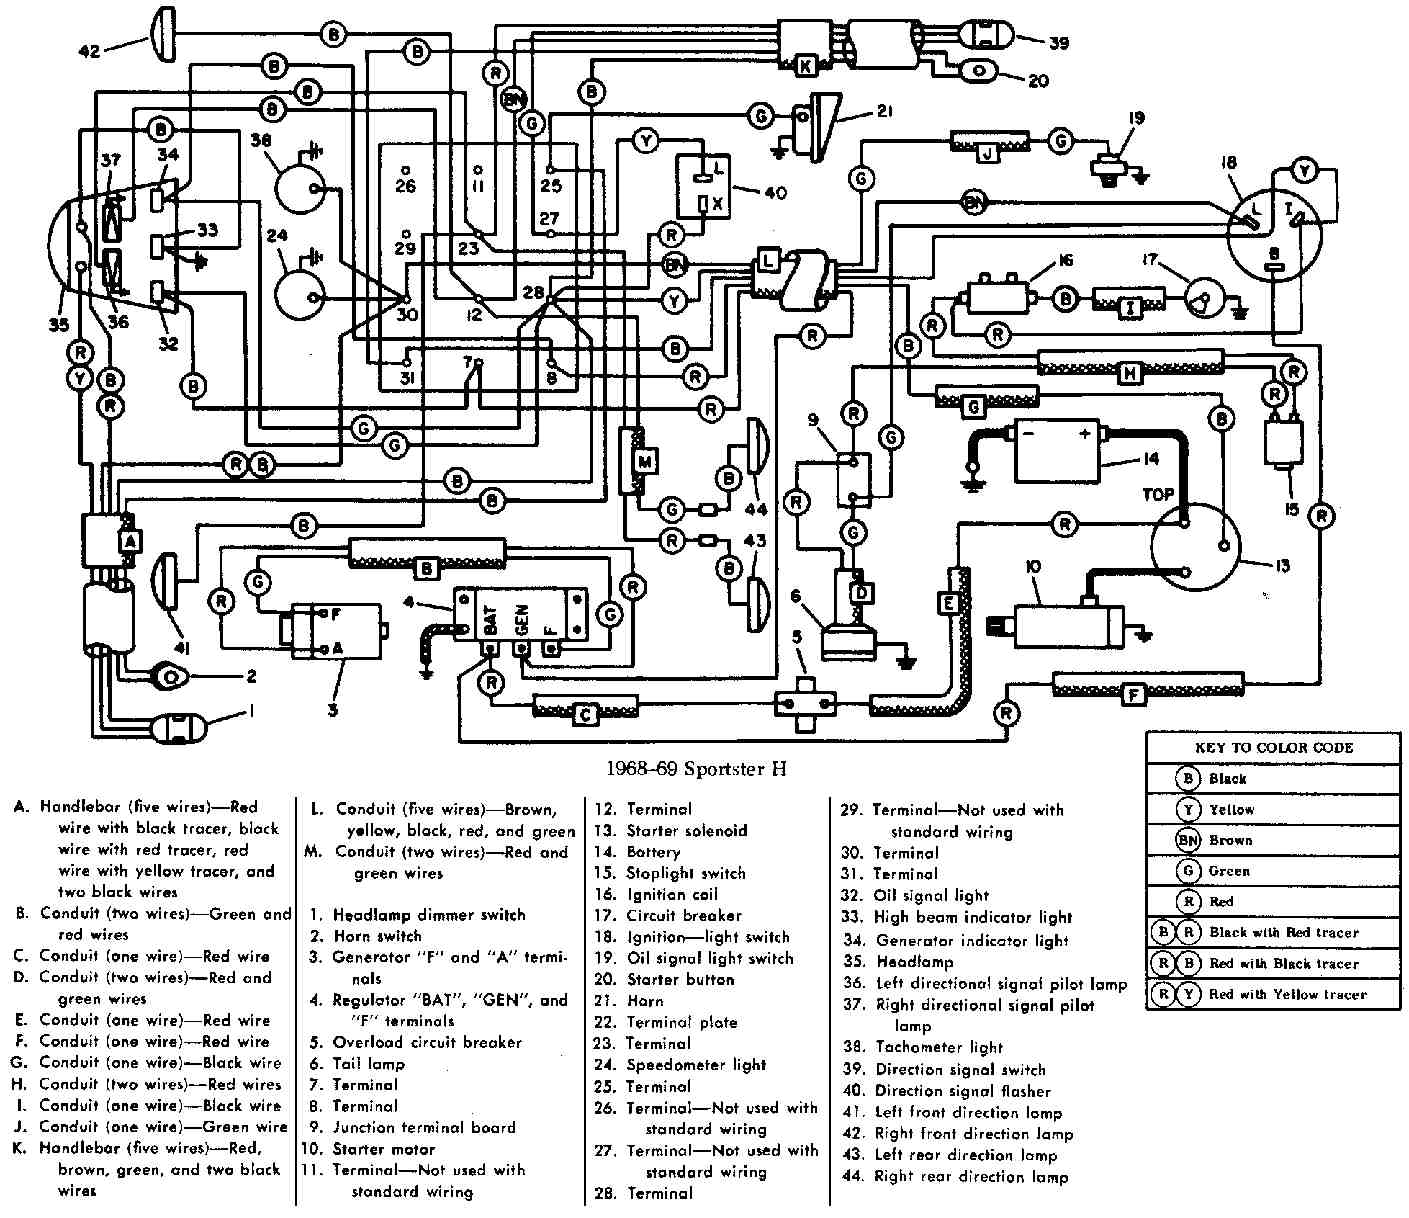 1977 harley davidson sportster 1000 wiring diagram trusted wiring rh soulmatestyle co 2014 harley throttle by wire diagram 2014 harley davidson street glide wiring diagram